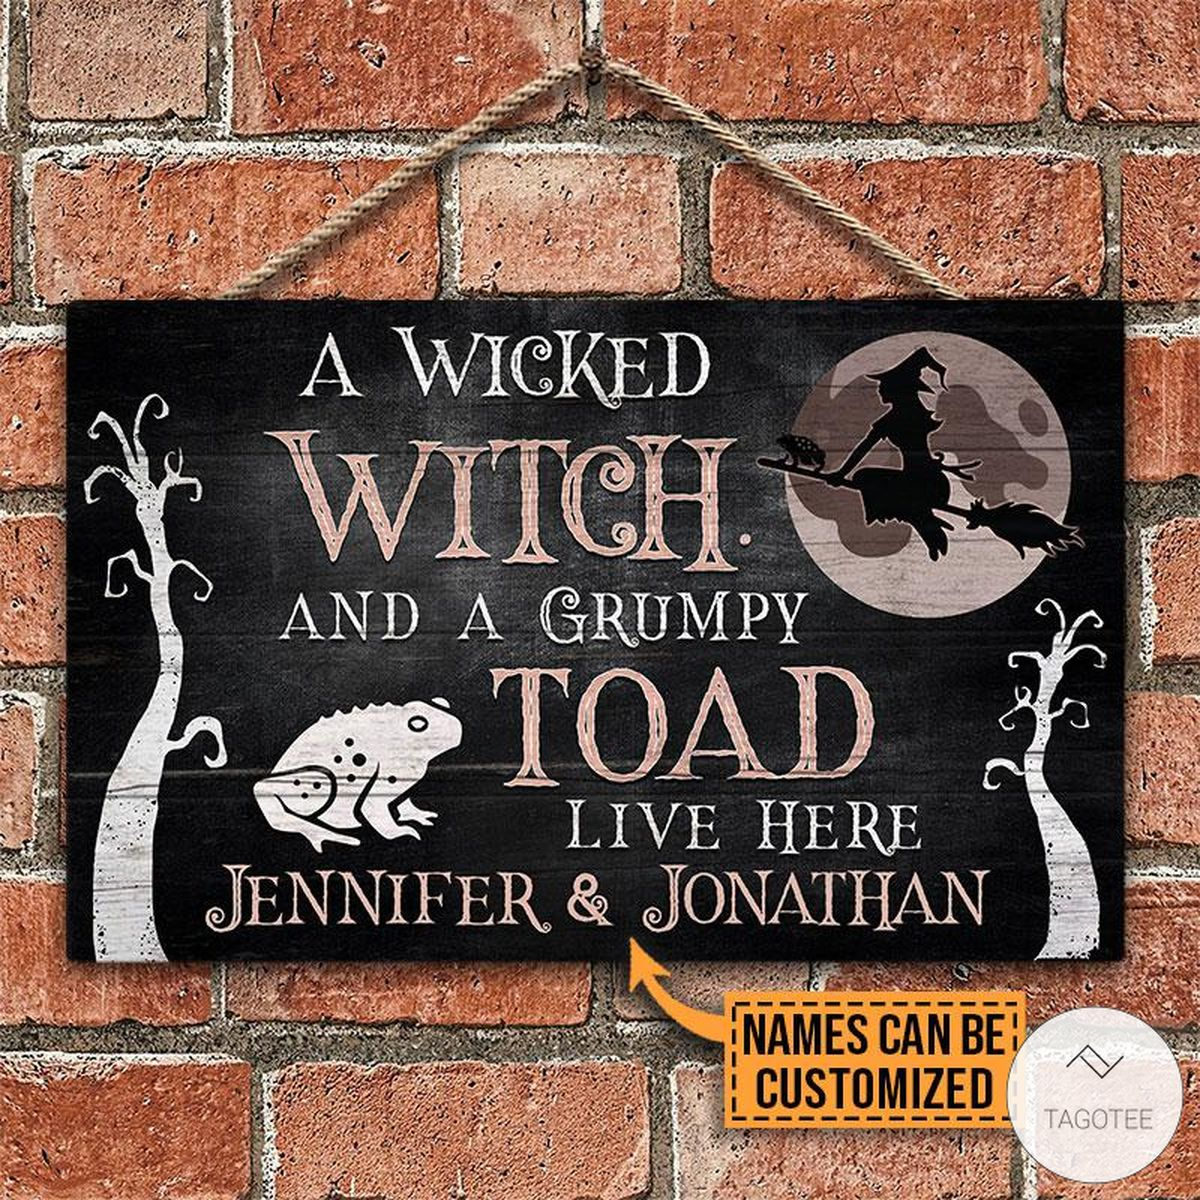 Personalized A Wicked Witch And A Grumpy Toad Live Here Rectangle Wood Signz